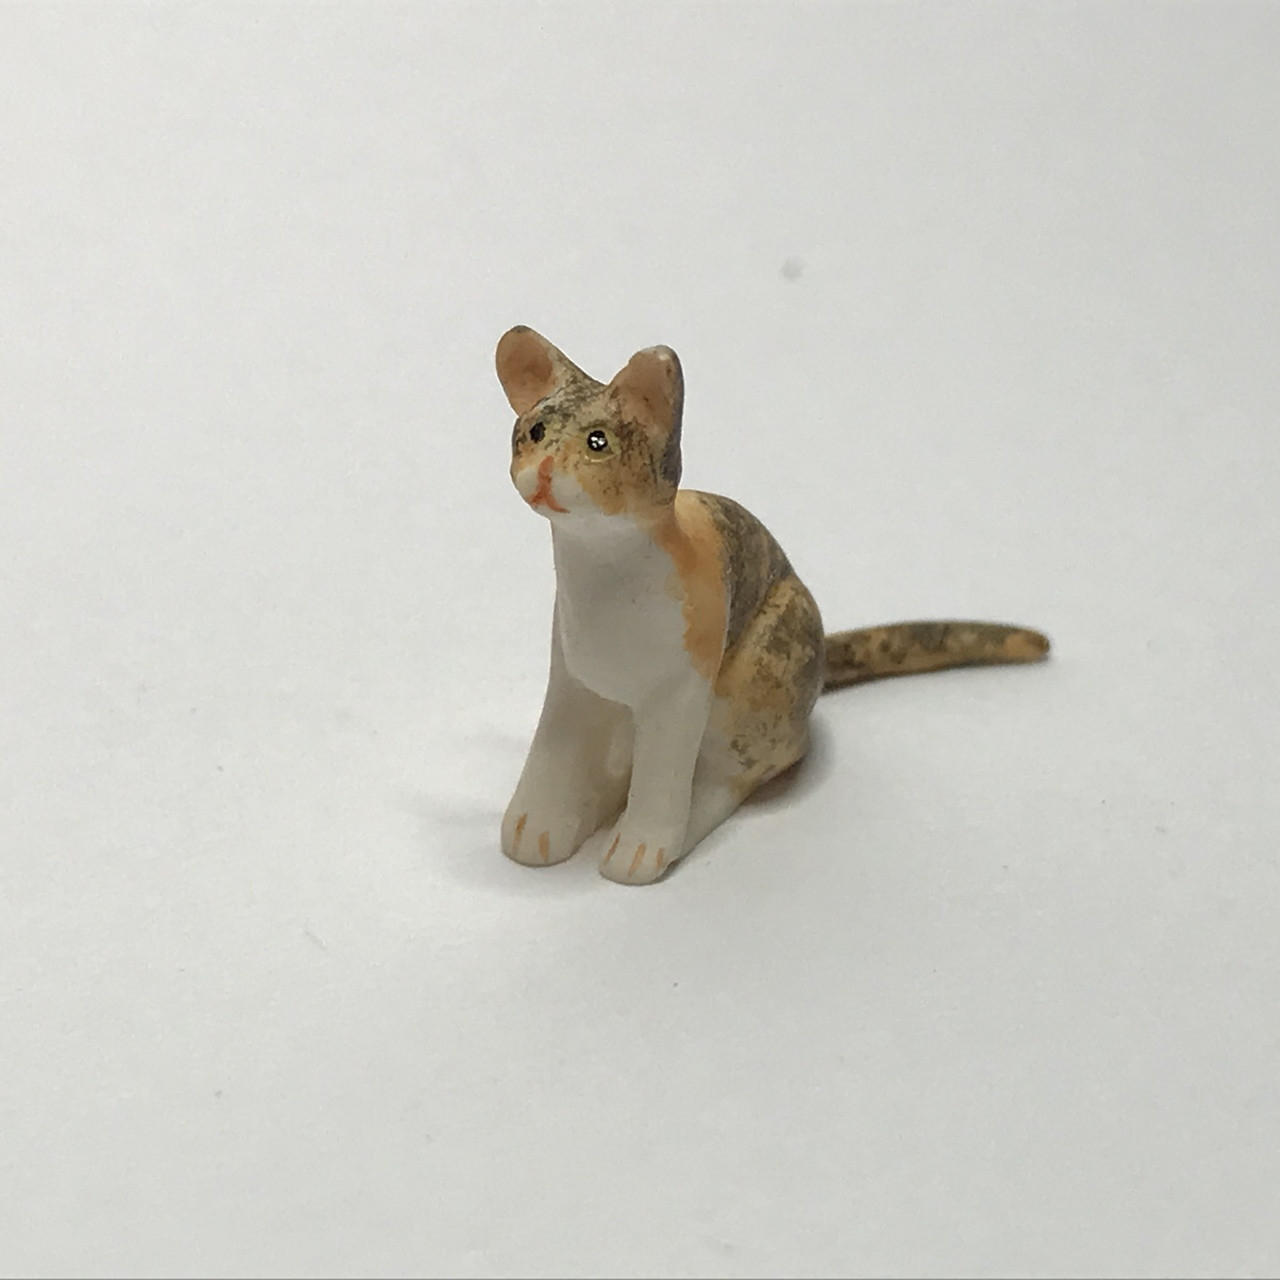 Dollhouse Miniature Orange Tabby Cat with Kittens by Falcon Miniatures